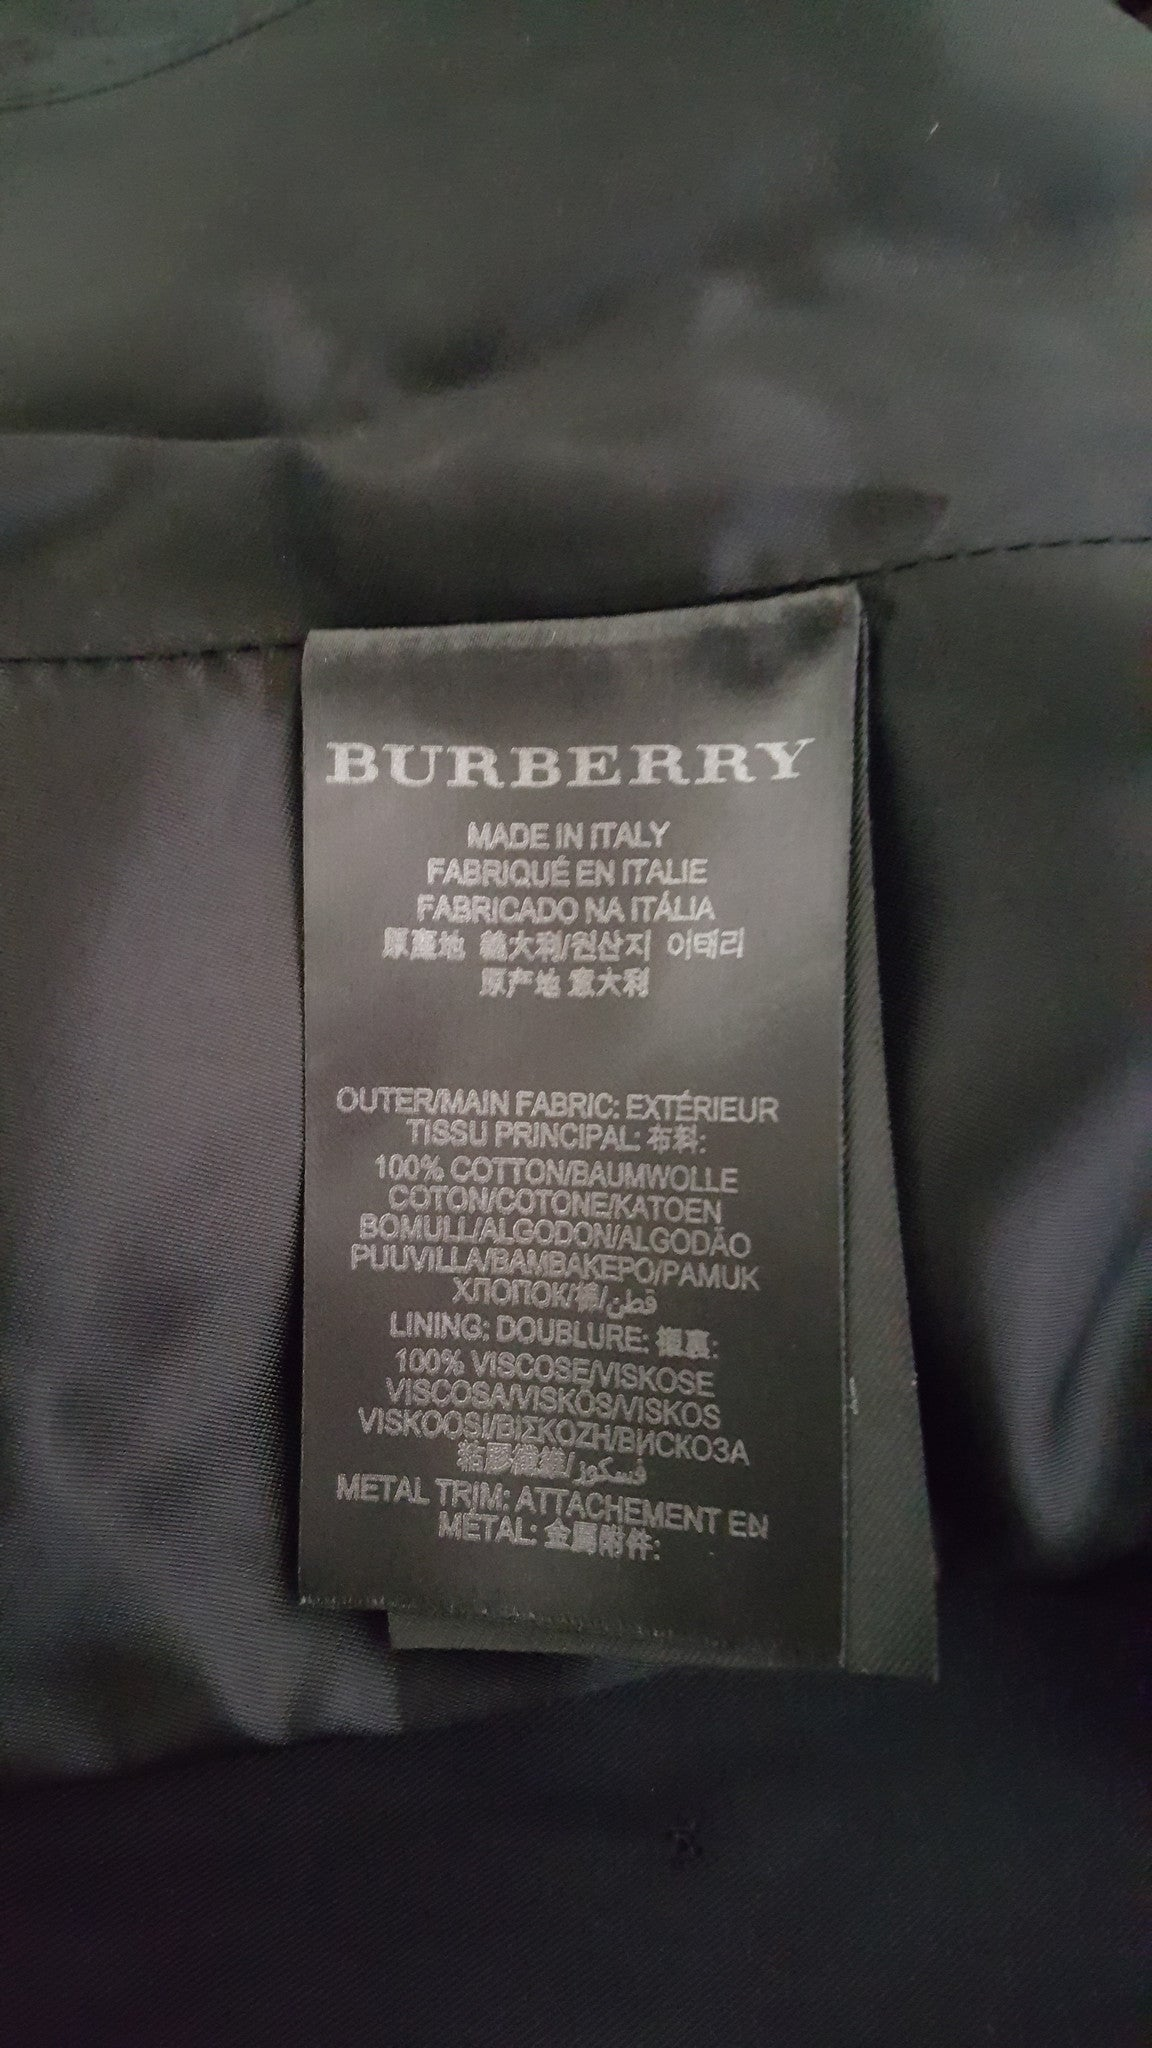 BURBERRY PRORSUM SLIM FIT TRENCH COAT - SIZE 38